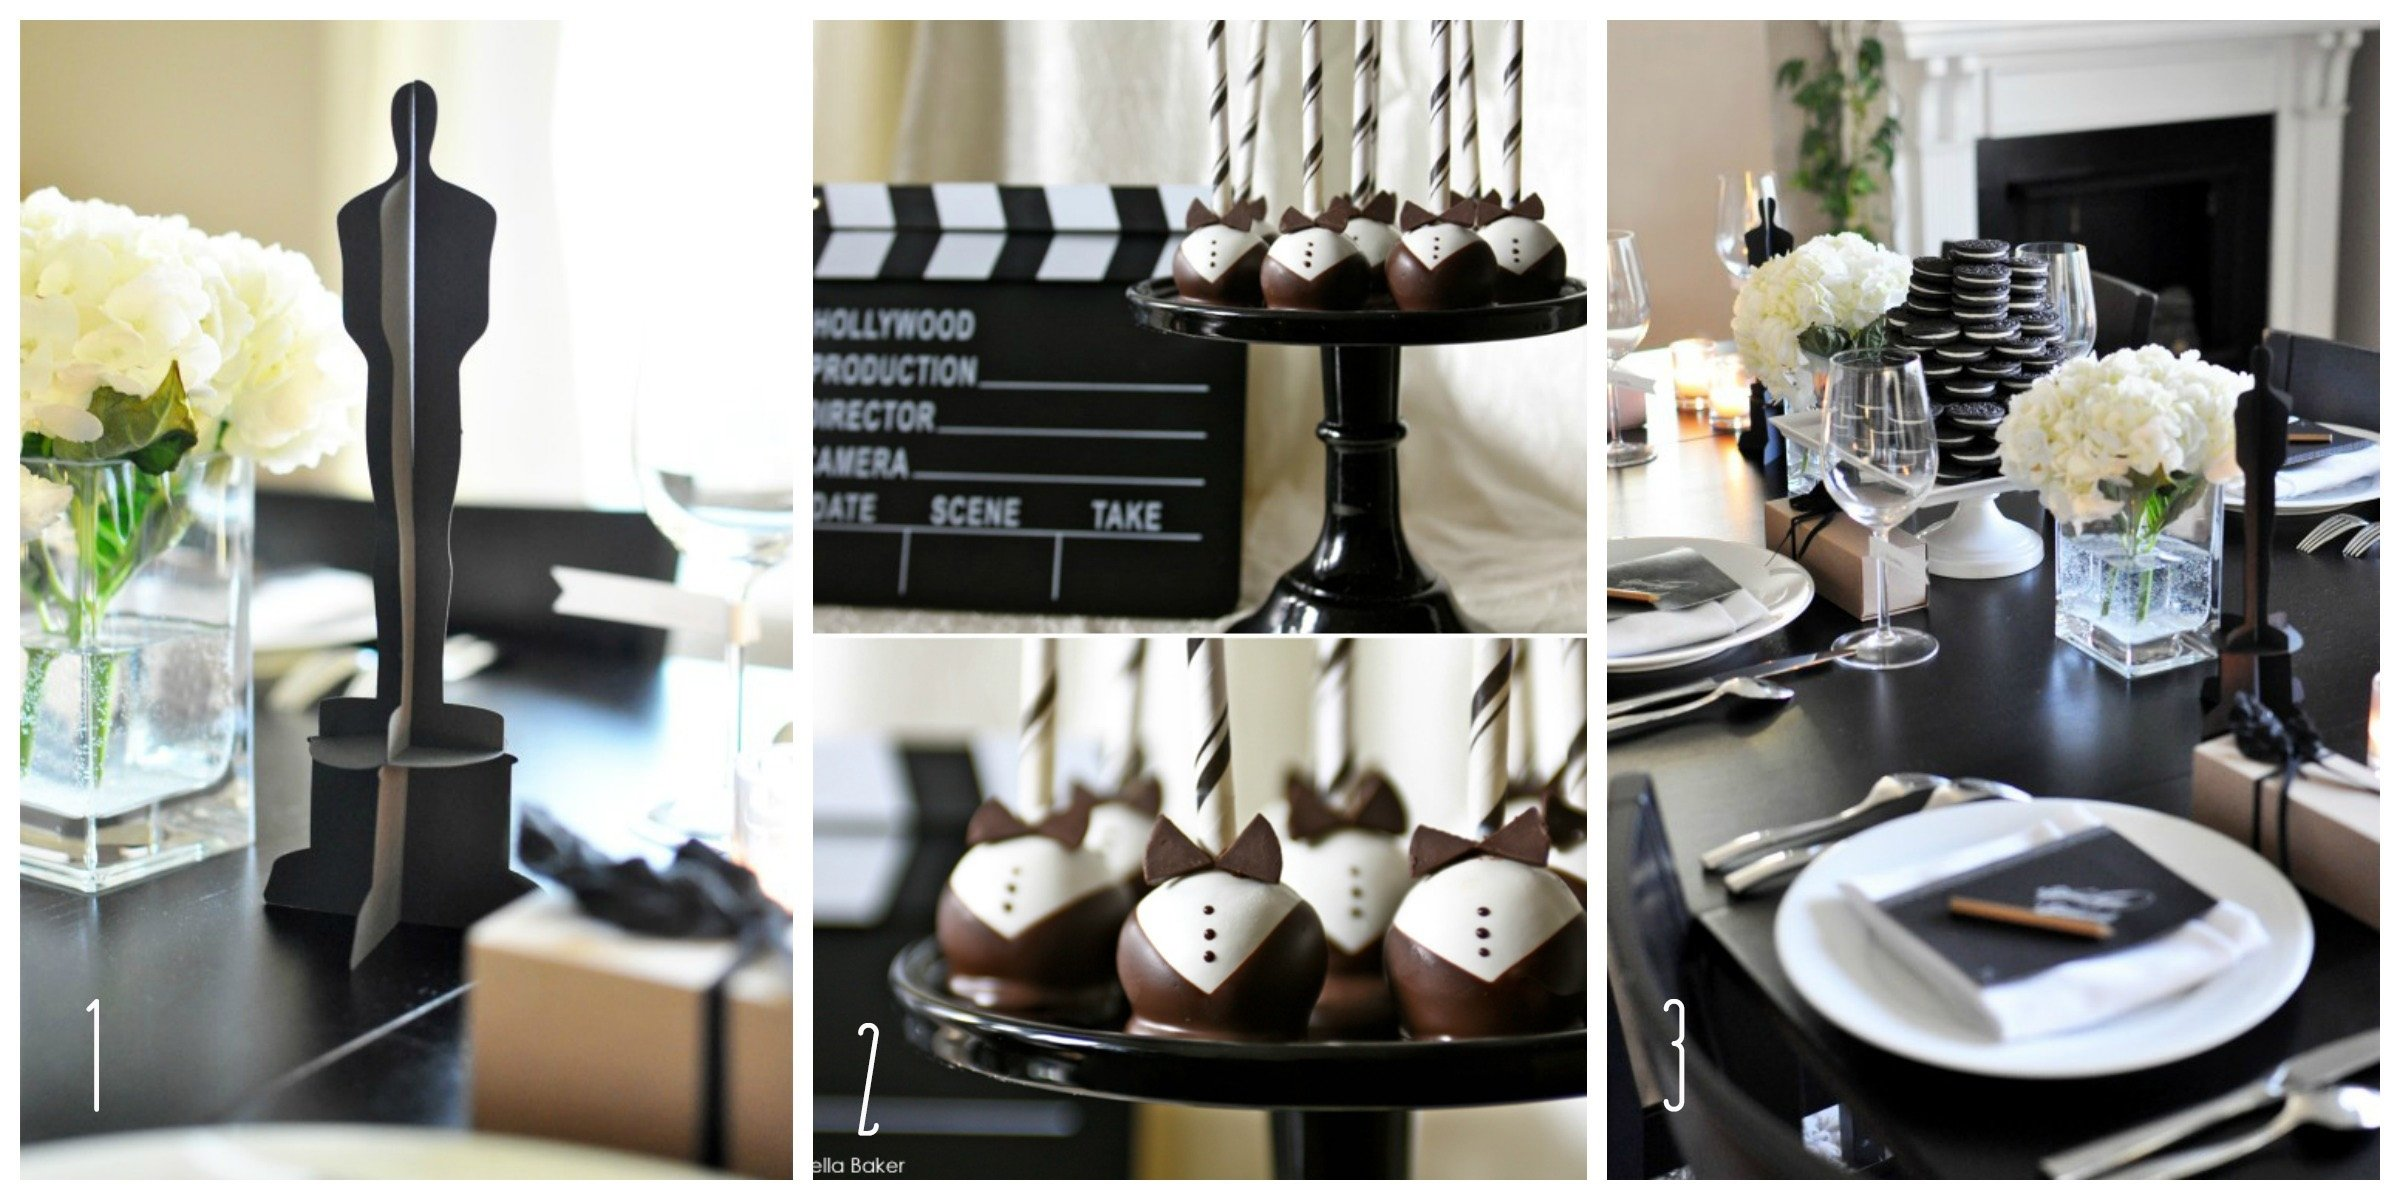 10 Awesome Black And White Centerpiece Ideas black and white party centerpiece ideas decorations for wedding 2021